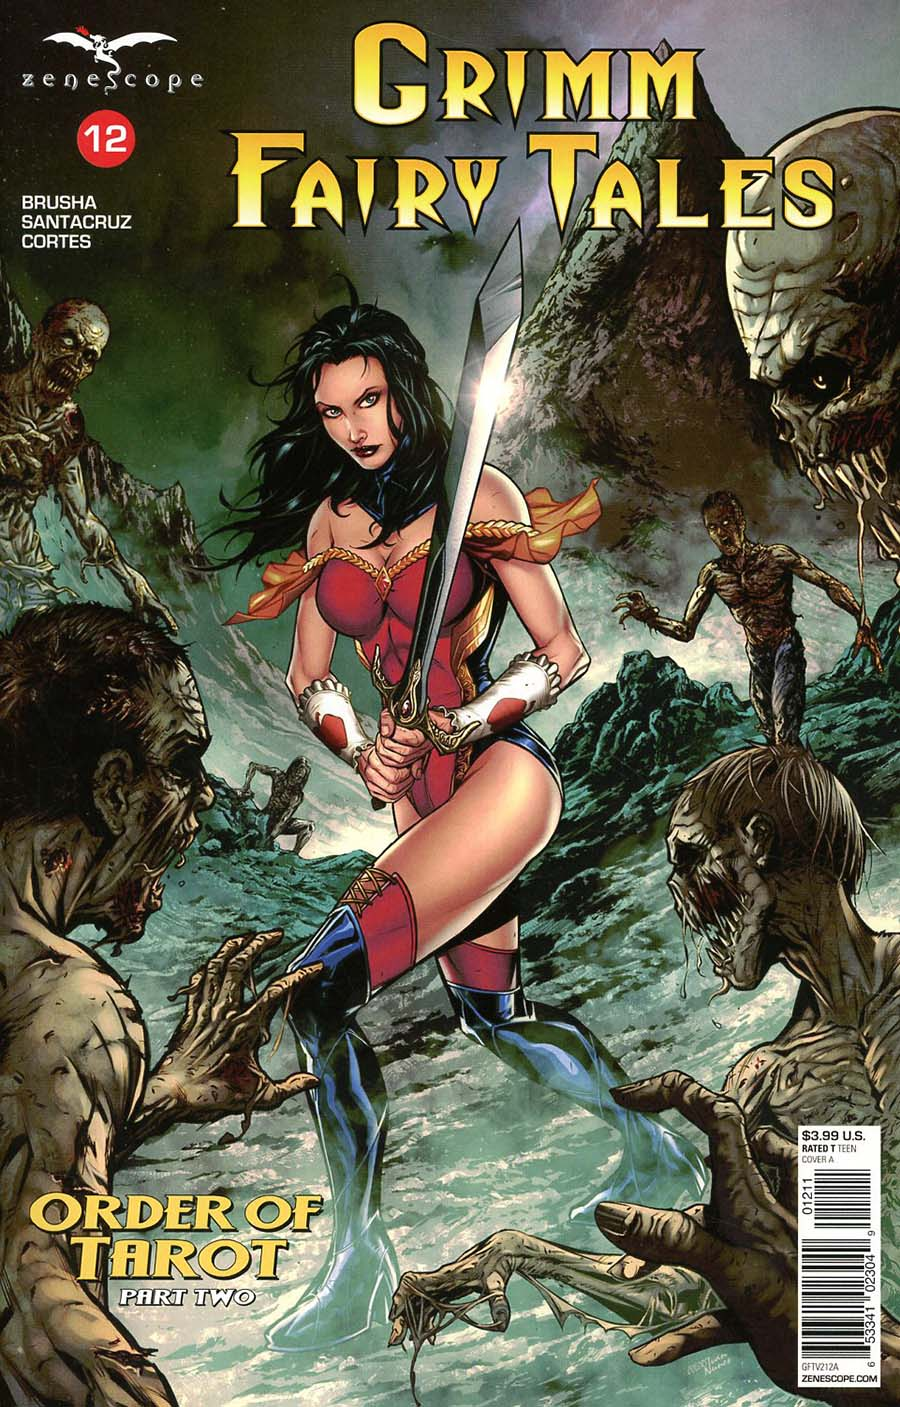 Grimm Fairy Tales Vol 2 #12 Cover A Riveiro